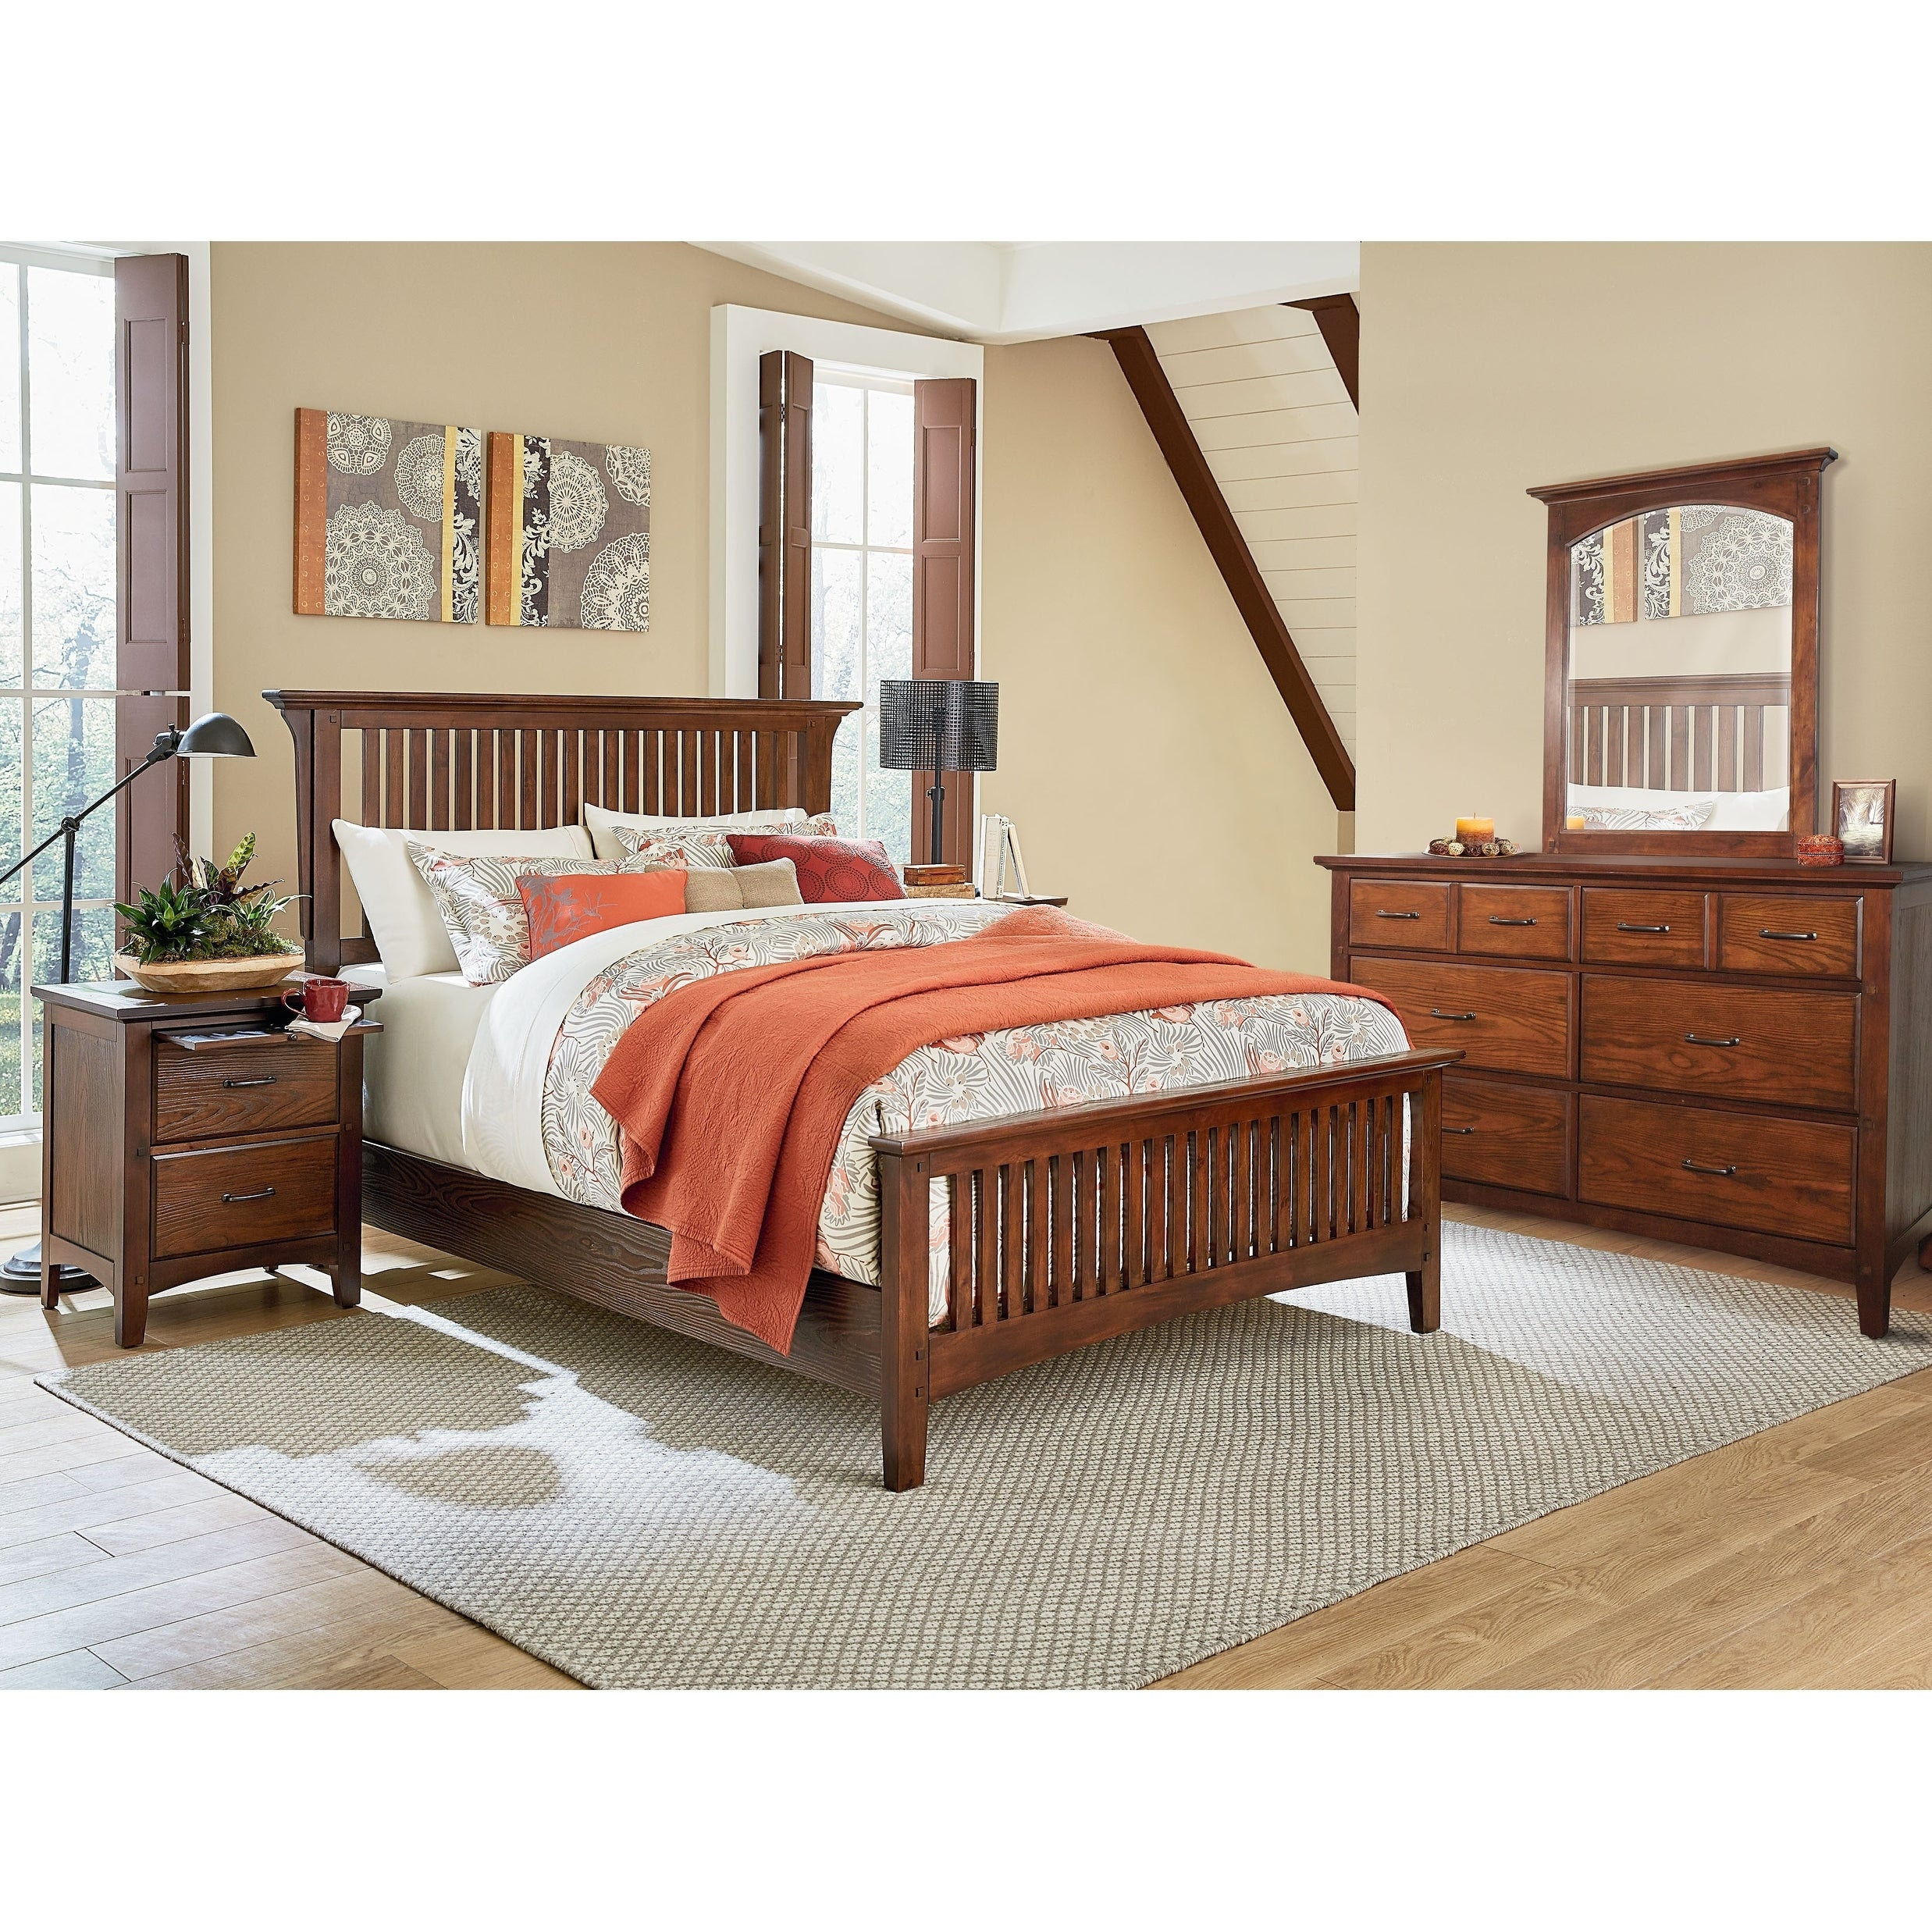 Osp Home Furnishings Modern Mission King Bedroom Set With 2 Nightstands And 1 Dresser With Mirror throughout 15 Genius Tricks of How to Craft King Bedroom Sets Modern